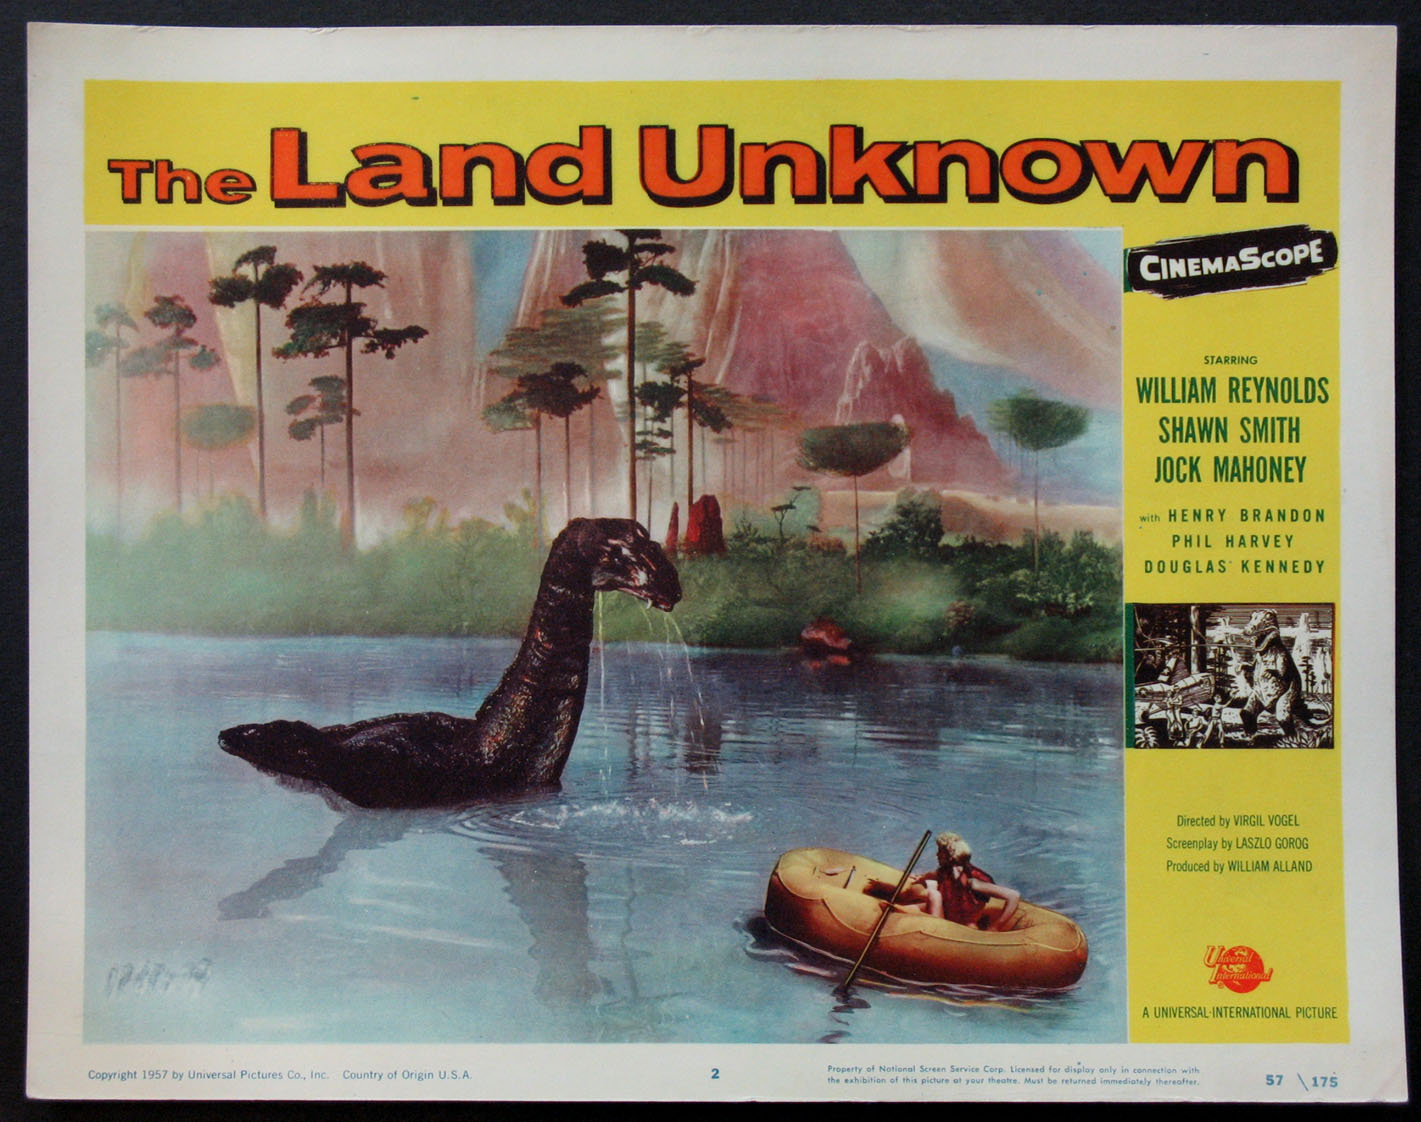 LAND UNKNOWN, THE (The Land Unknown) @ FilmPosters.com